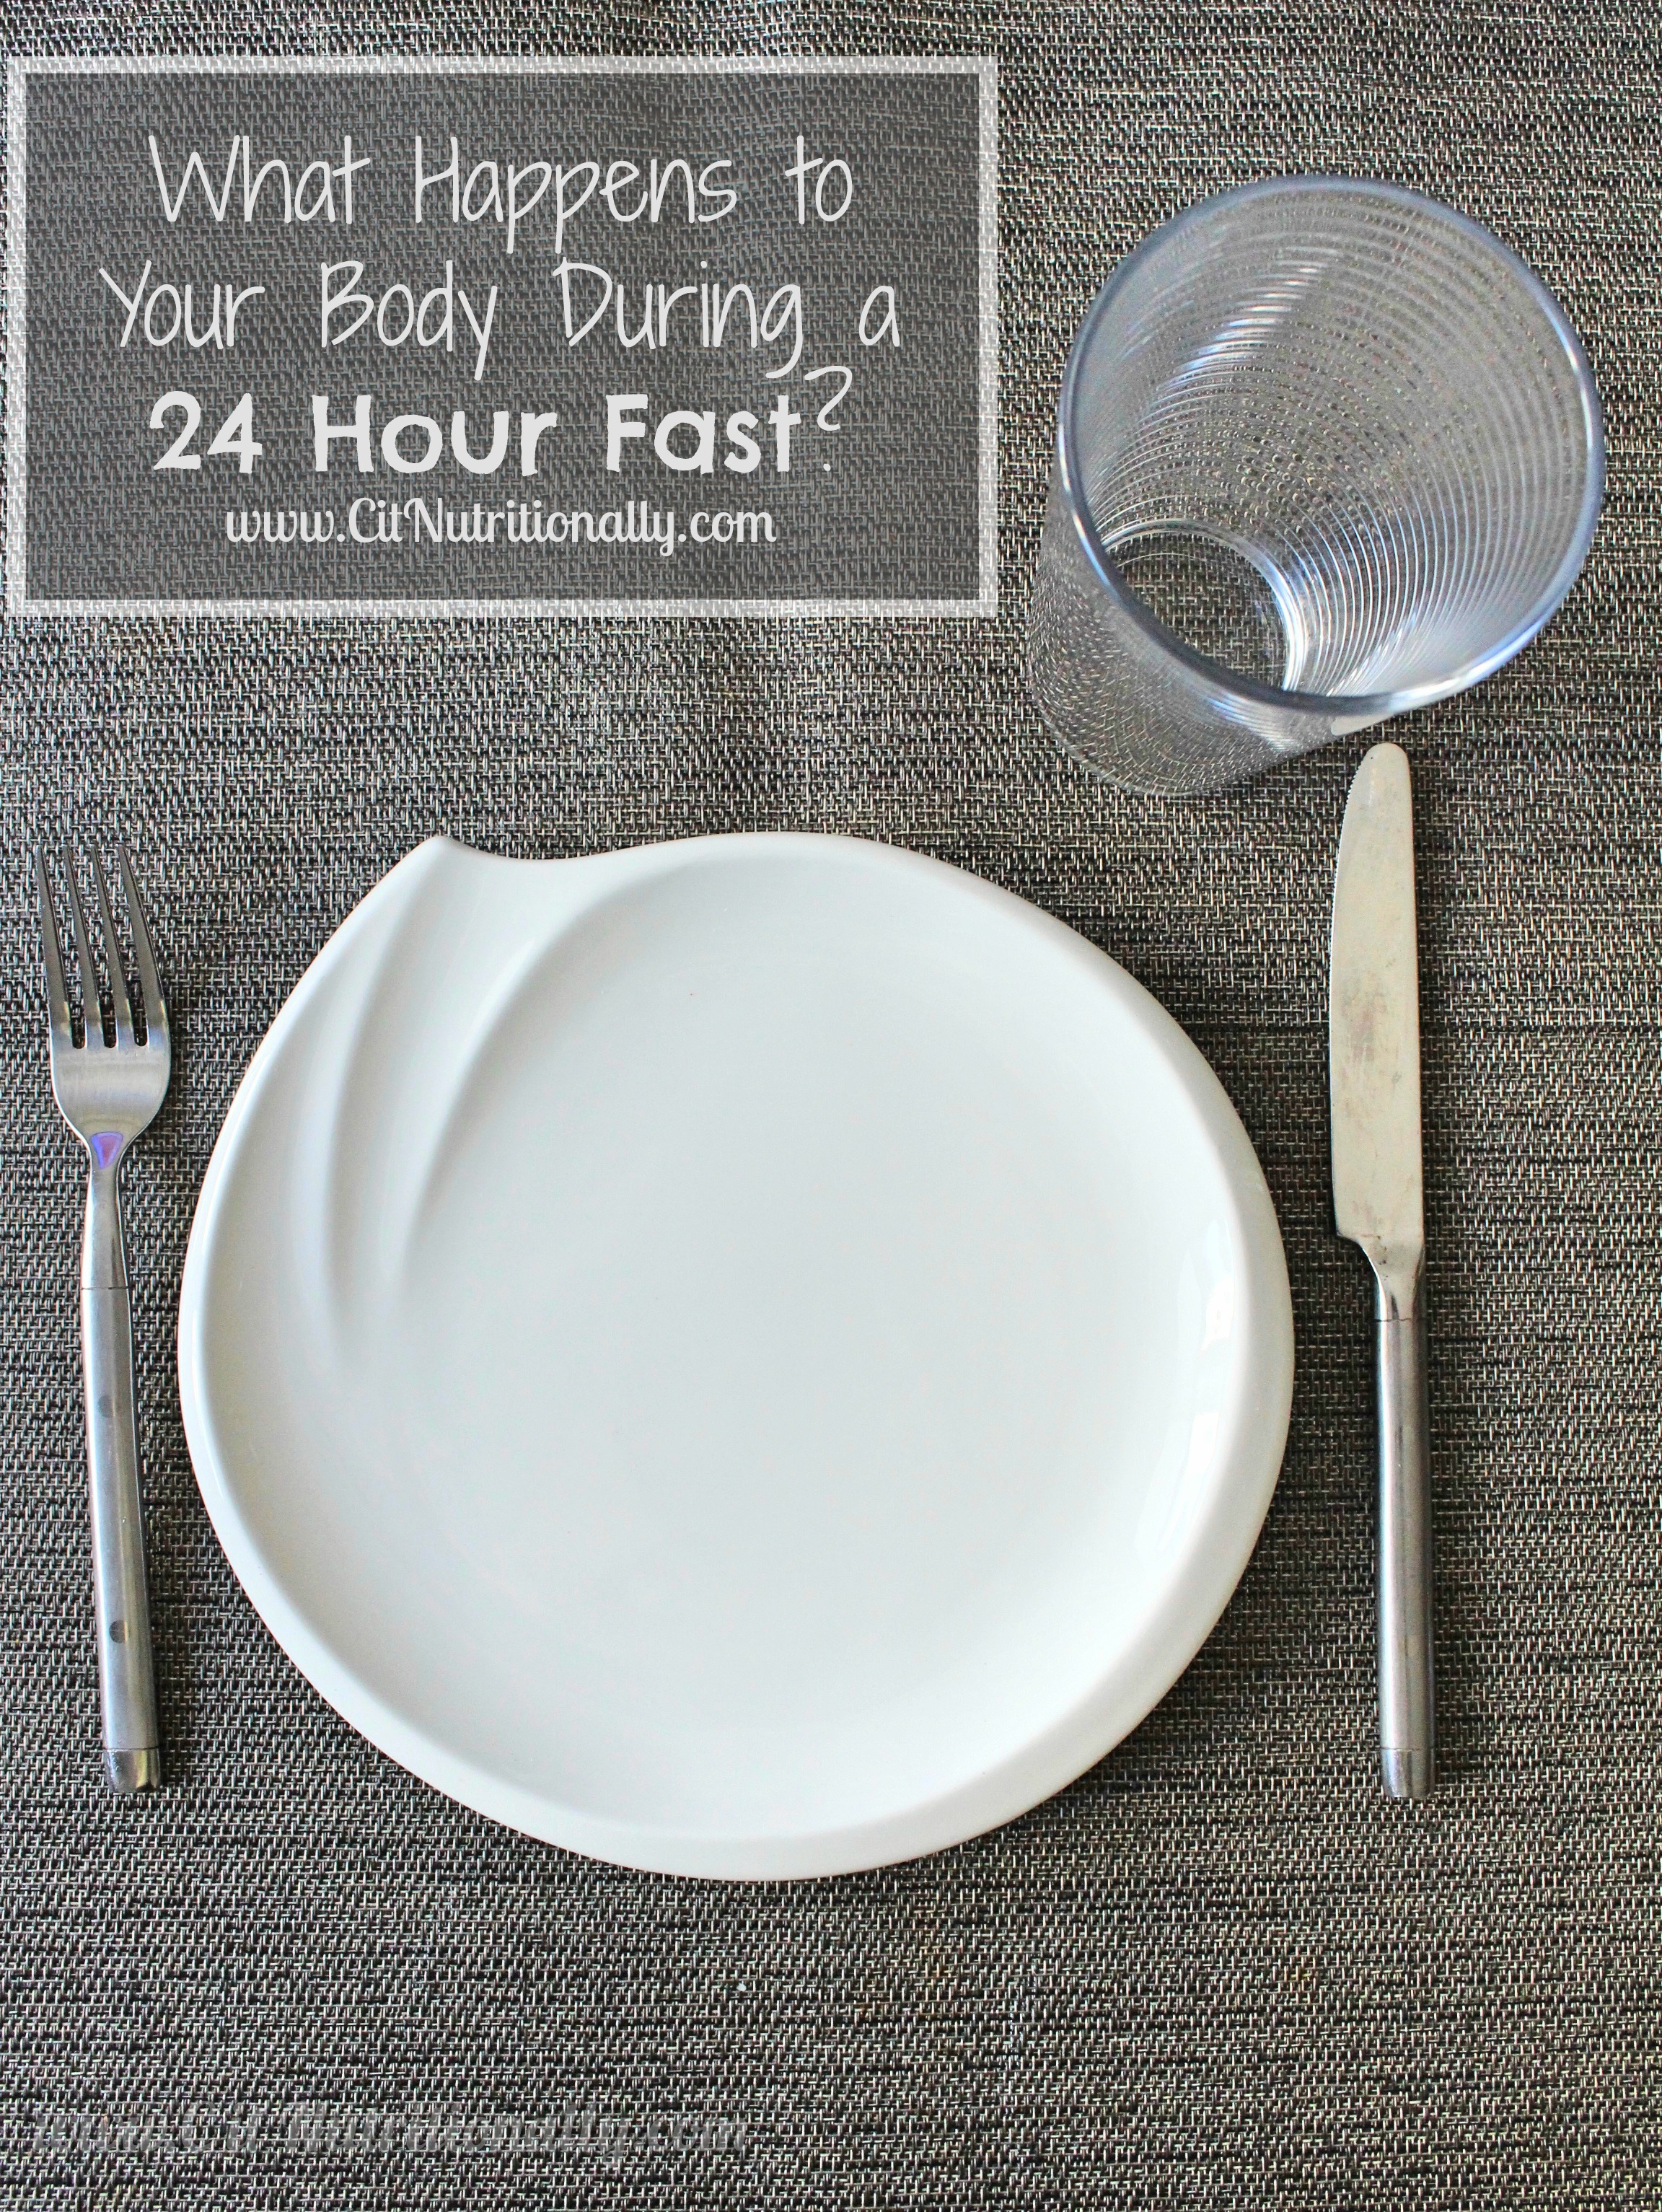 What Happens to Your Body During a 24 Hour Fast? - Chelsey Amer